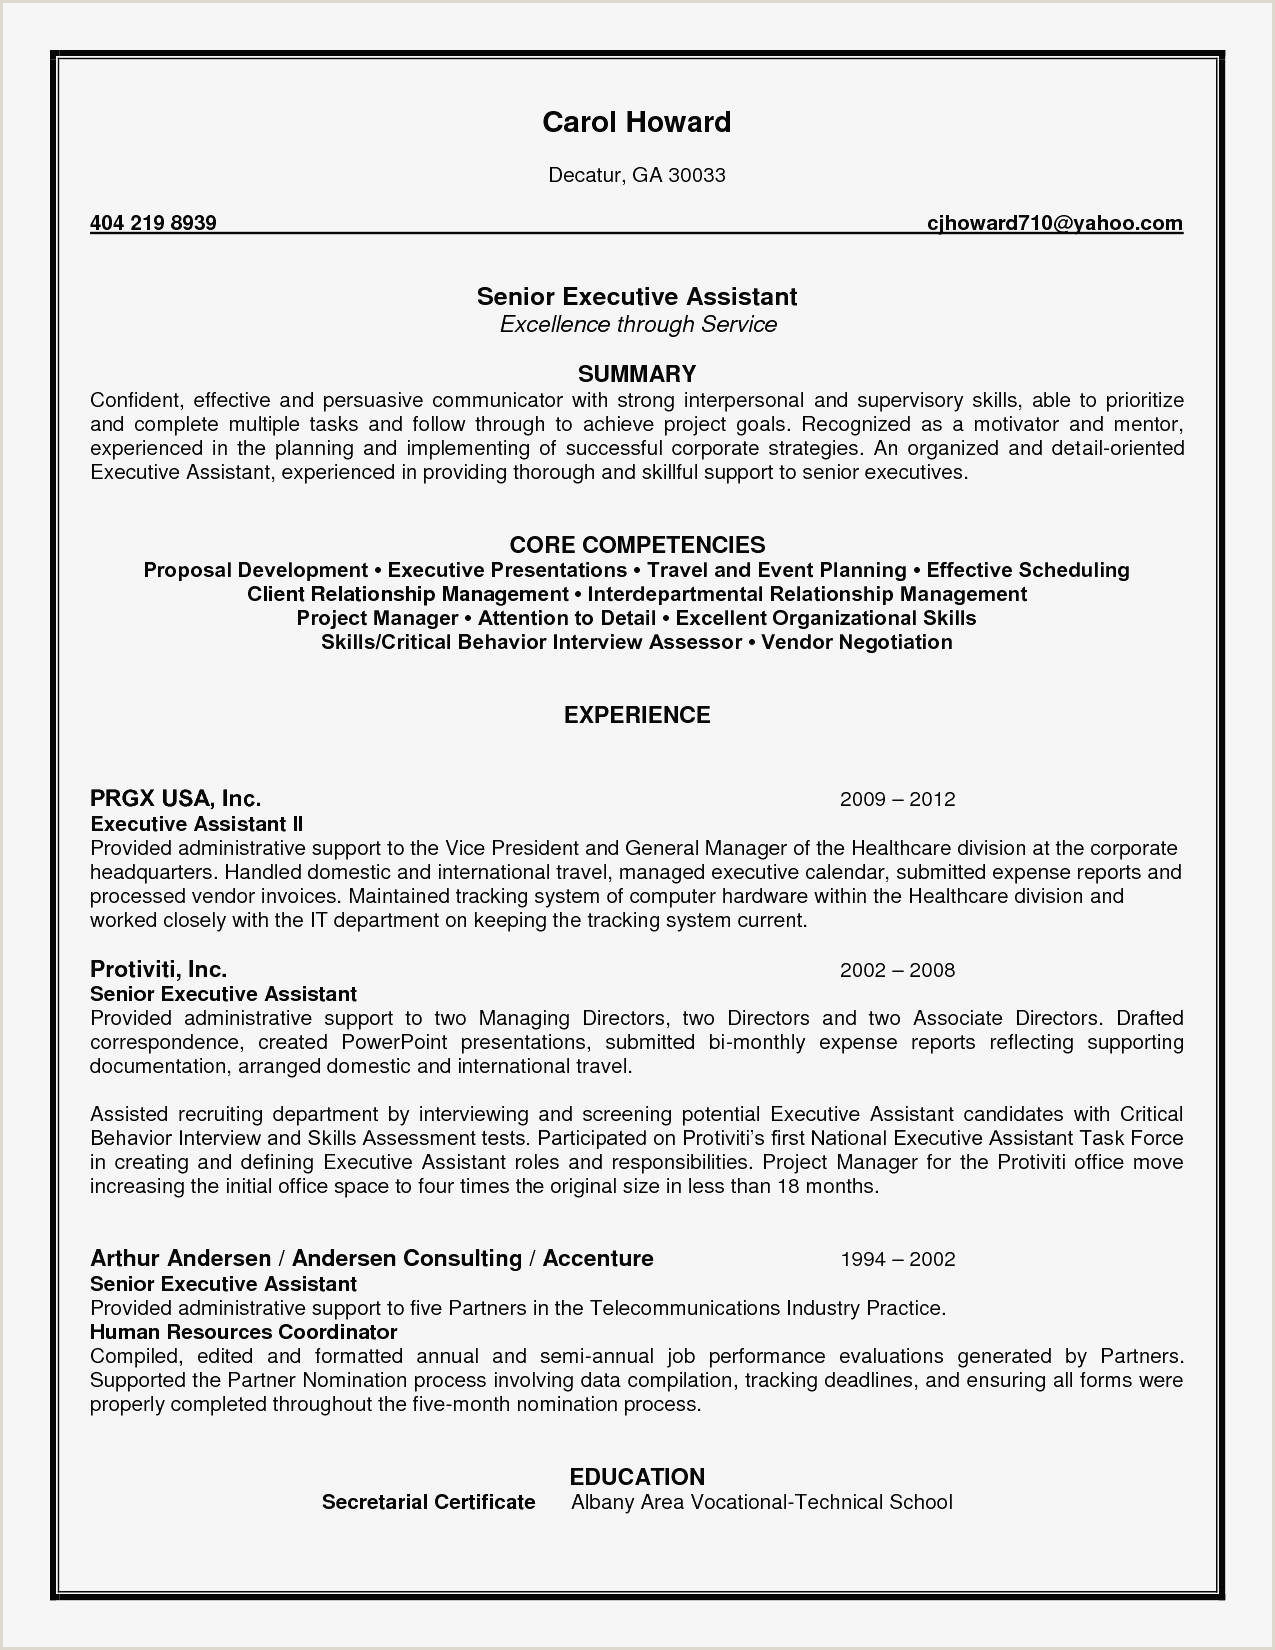 Latest Cv format for Experienced Cv Cadre Dirigeant Magnifique Simple Job Resume Examples